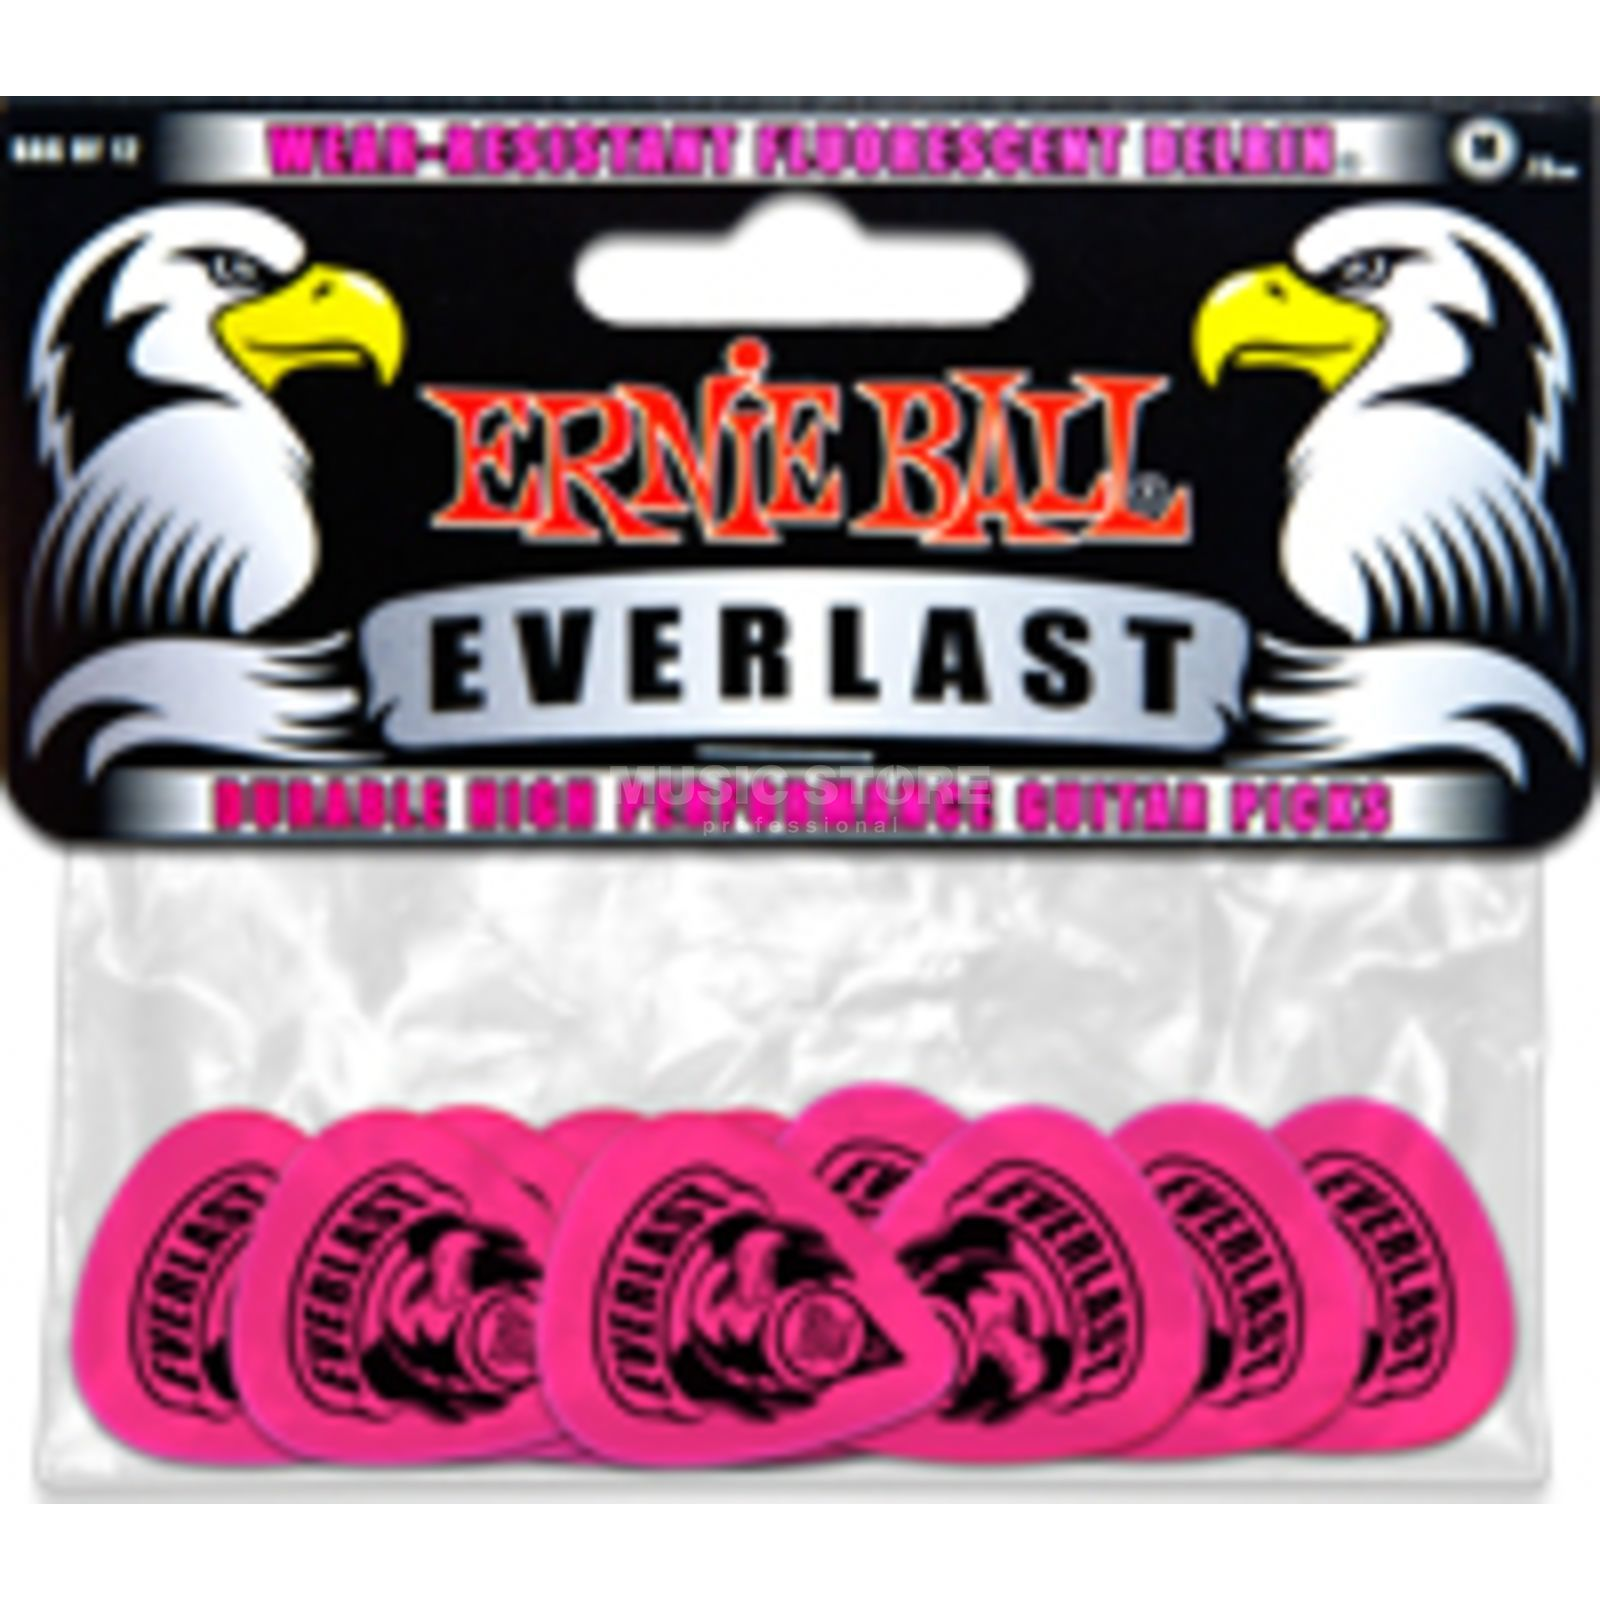 Ernie Ball Everlast Picks Medium Pink Box of 12 Produktbillede